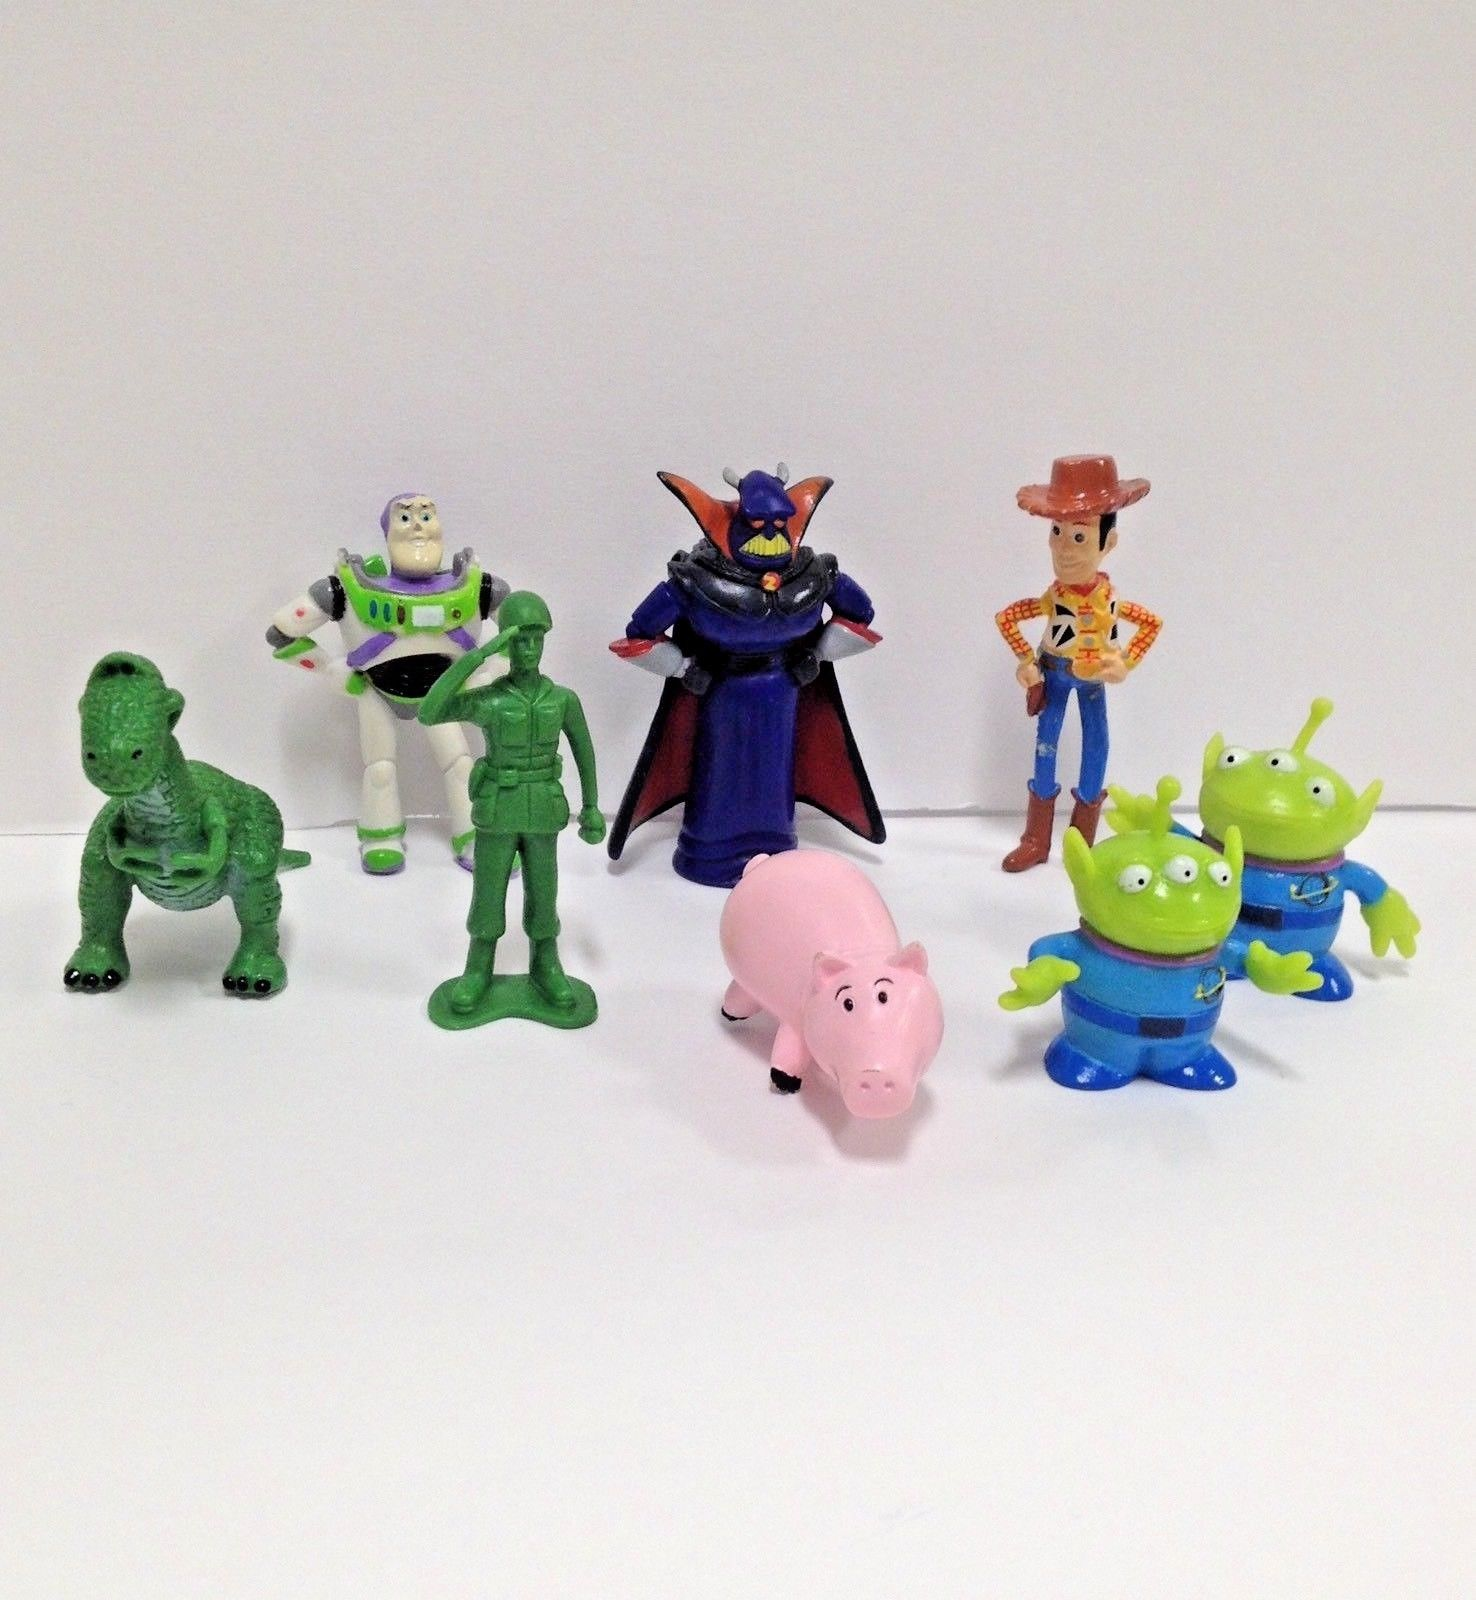 Toy Story Cake Toppers - Shop Toy Story Cake Toppers Online